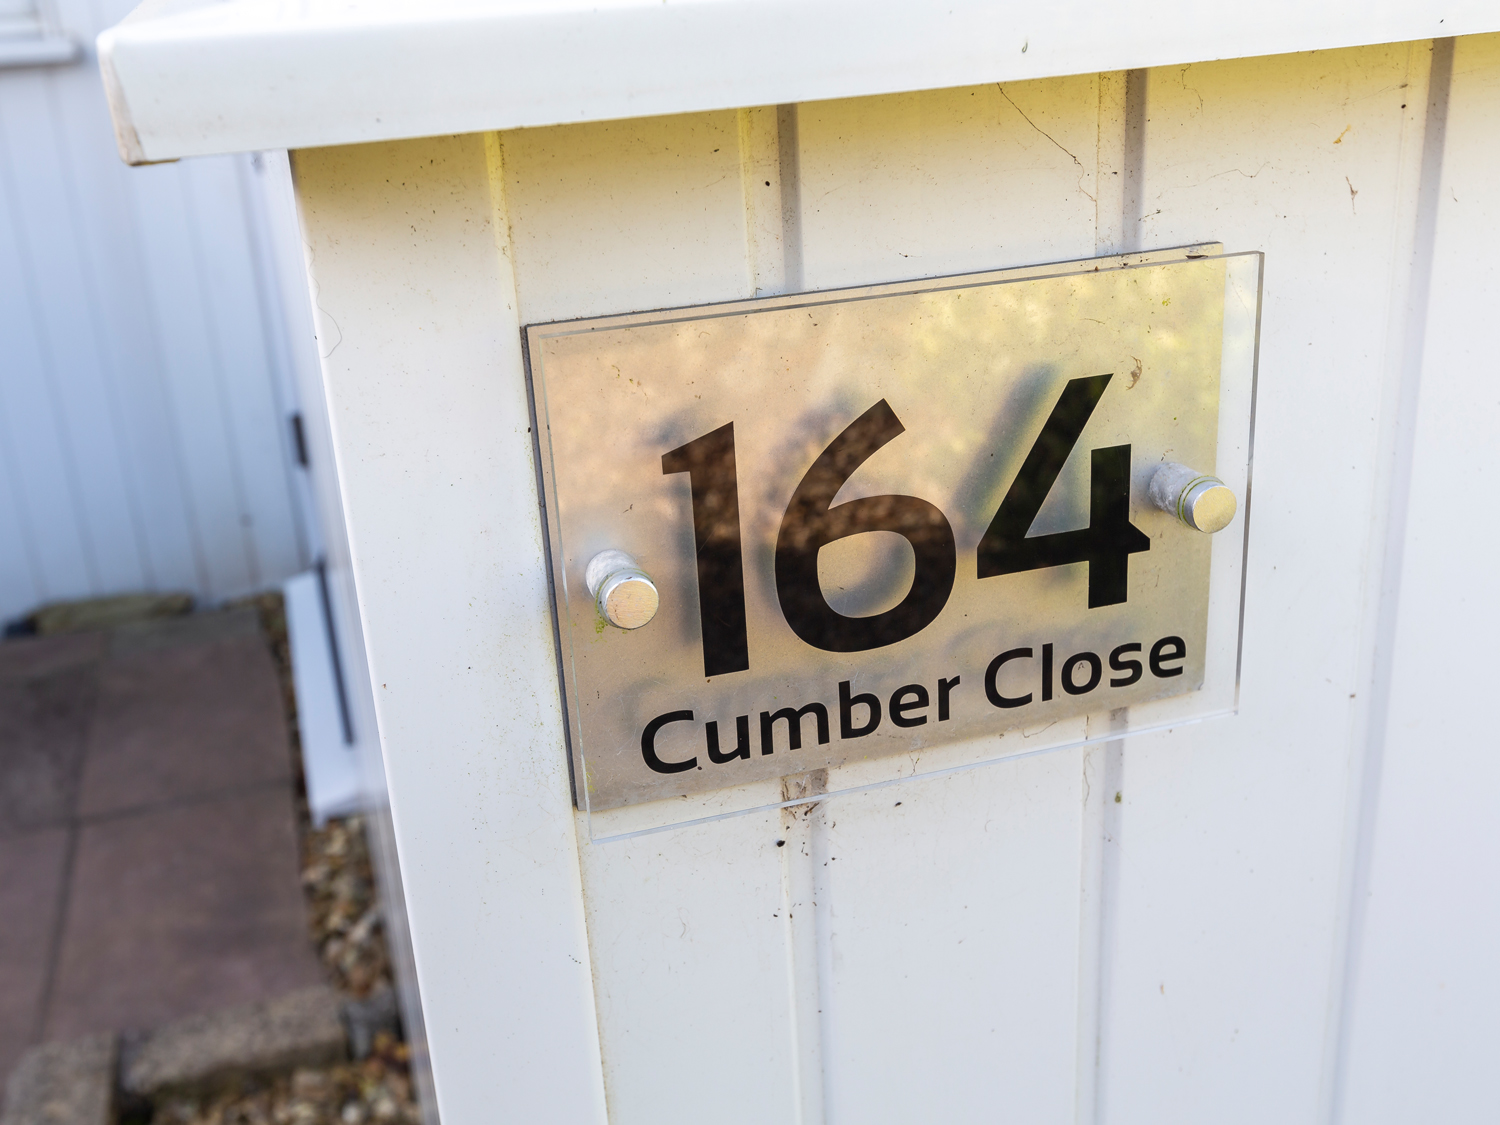 164 Cumber Close Image 13